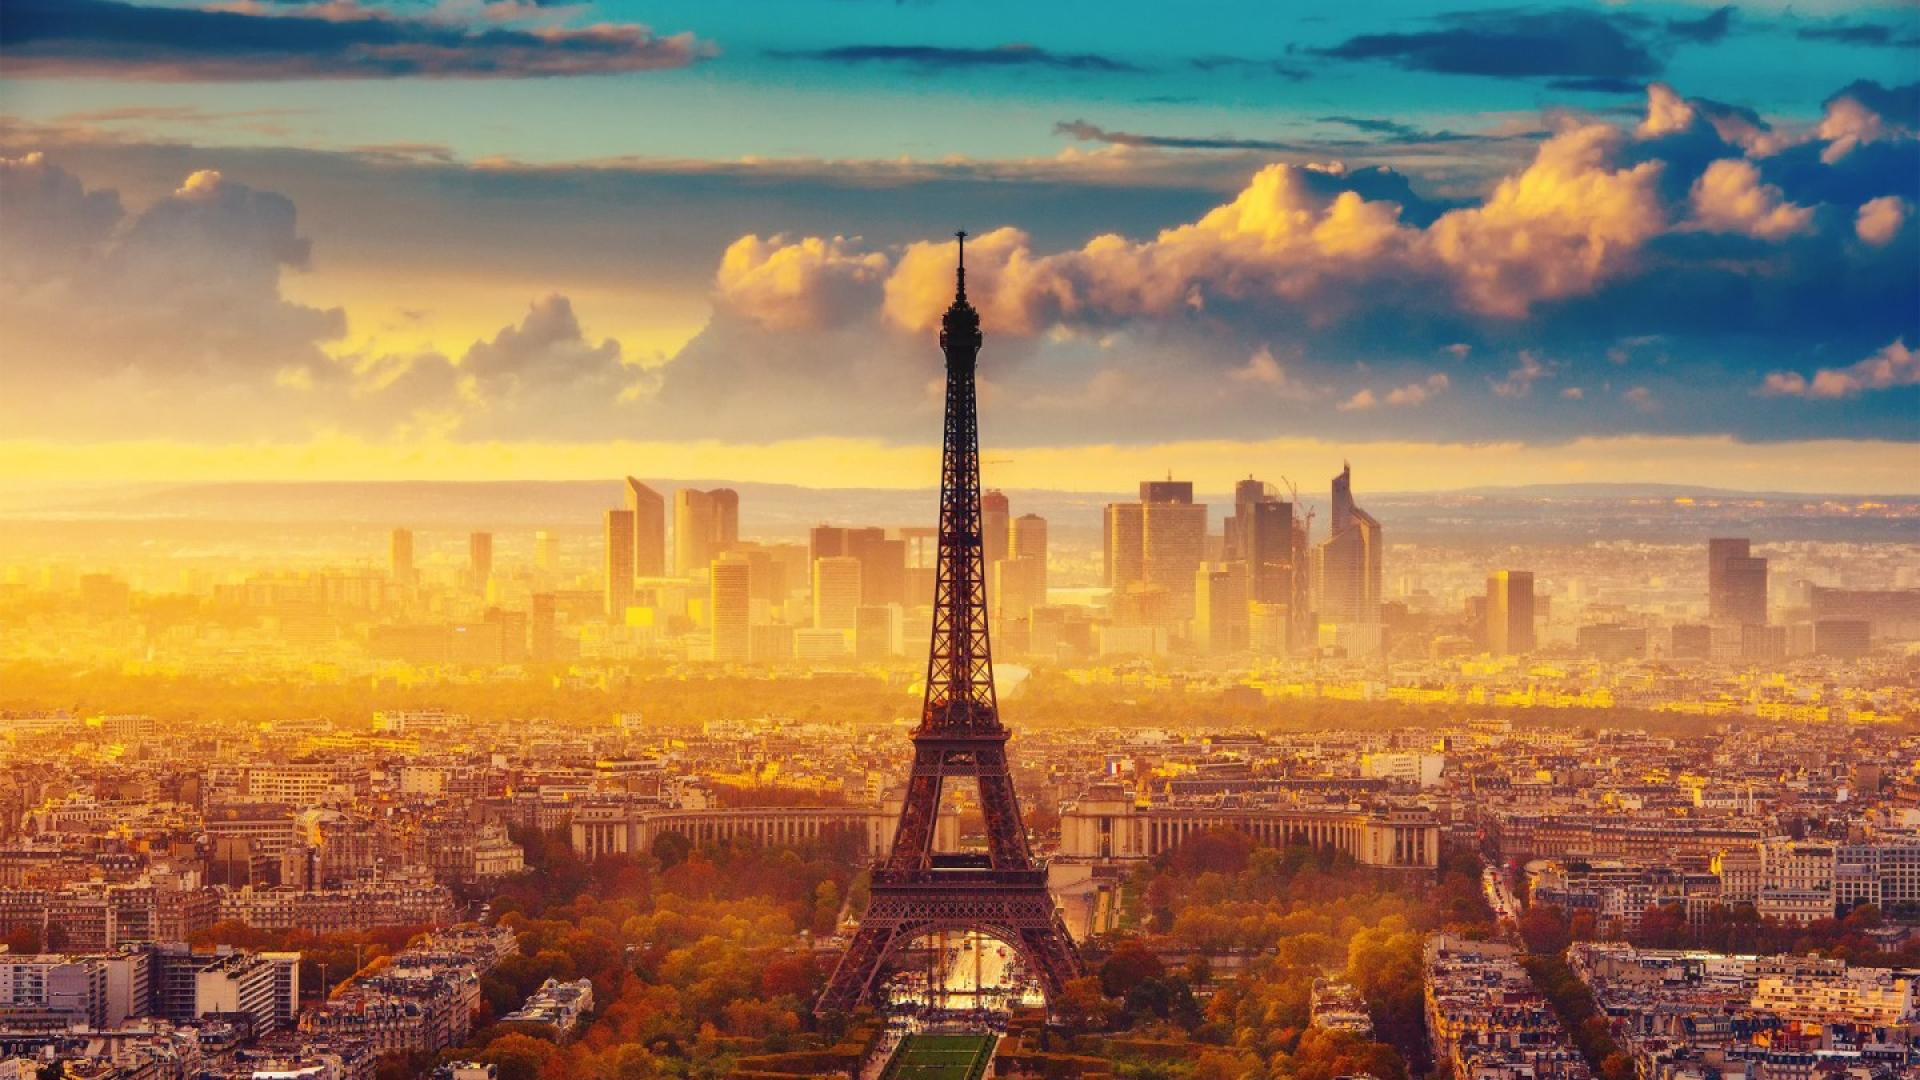 ... Eiffel Tower Wallpaper HD